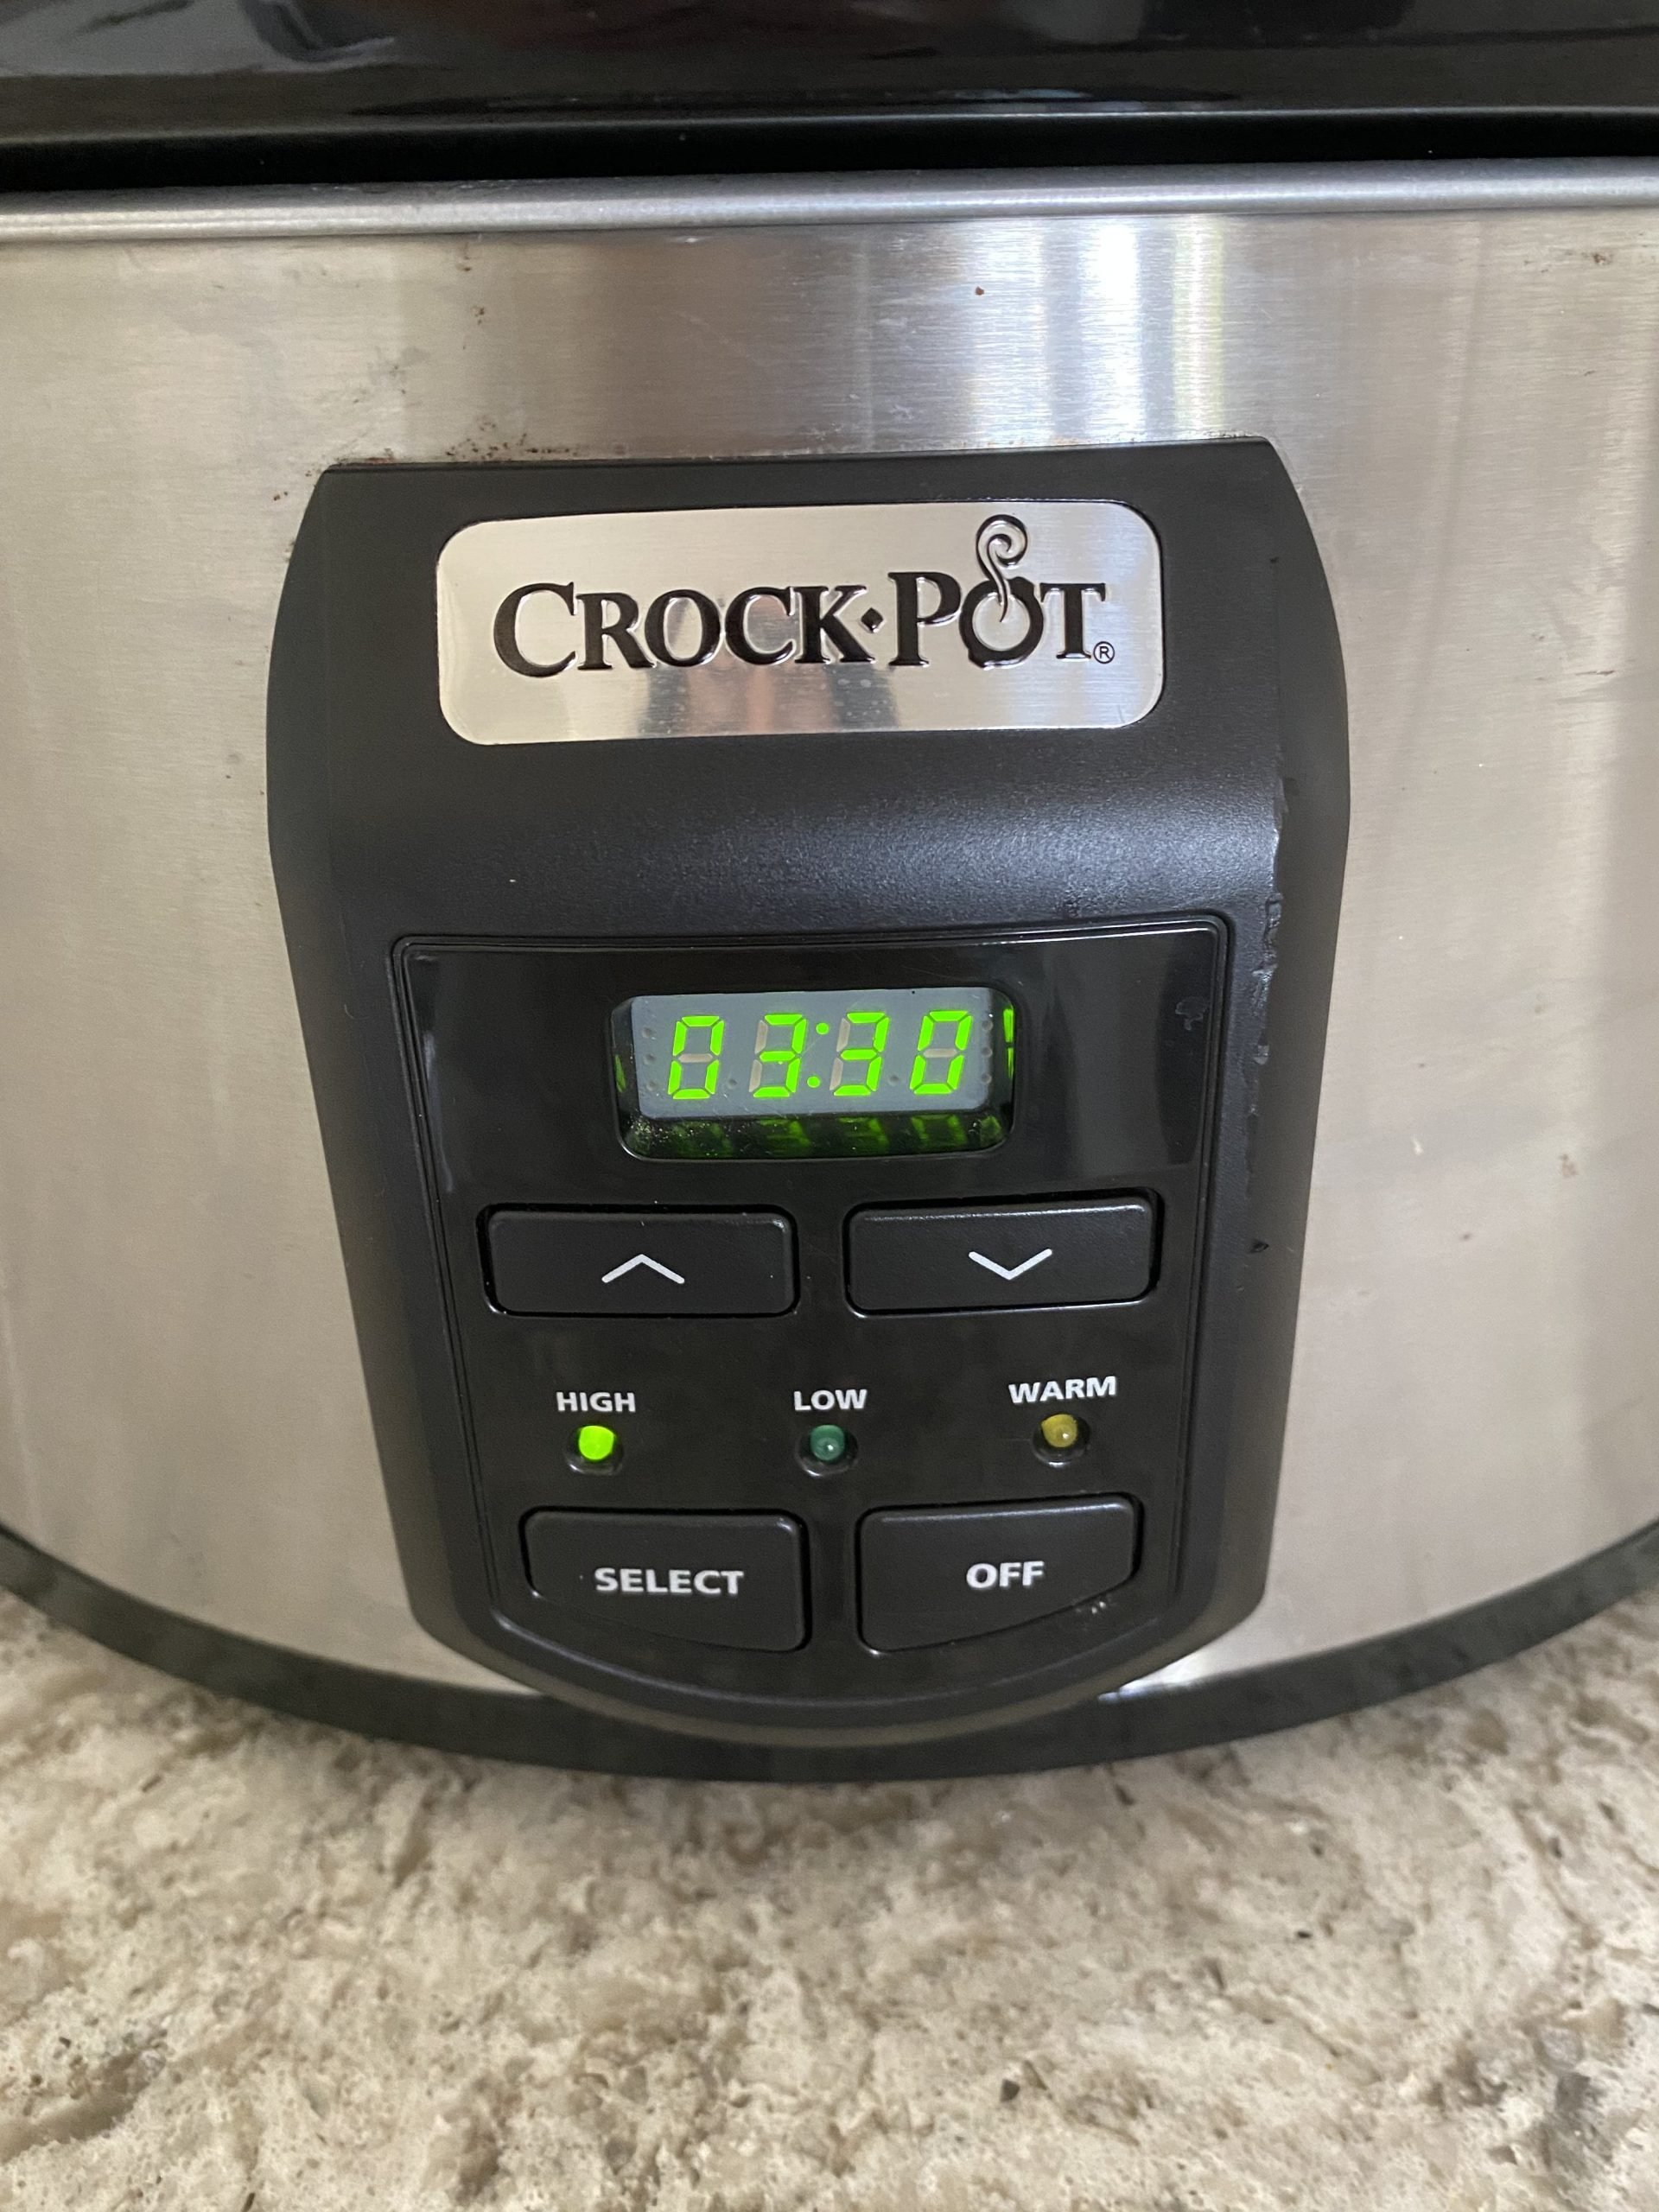 crockpot set on high